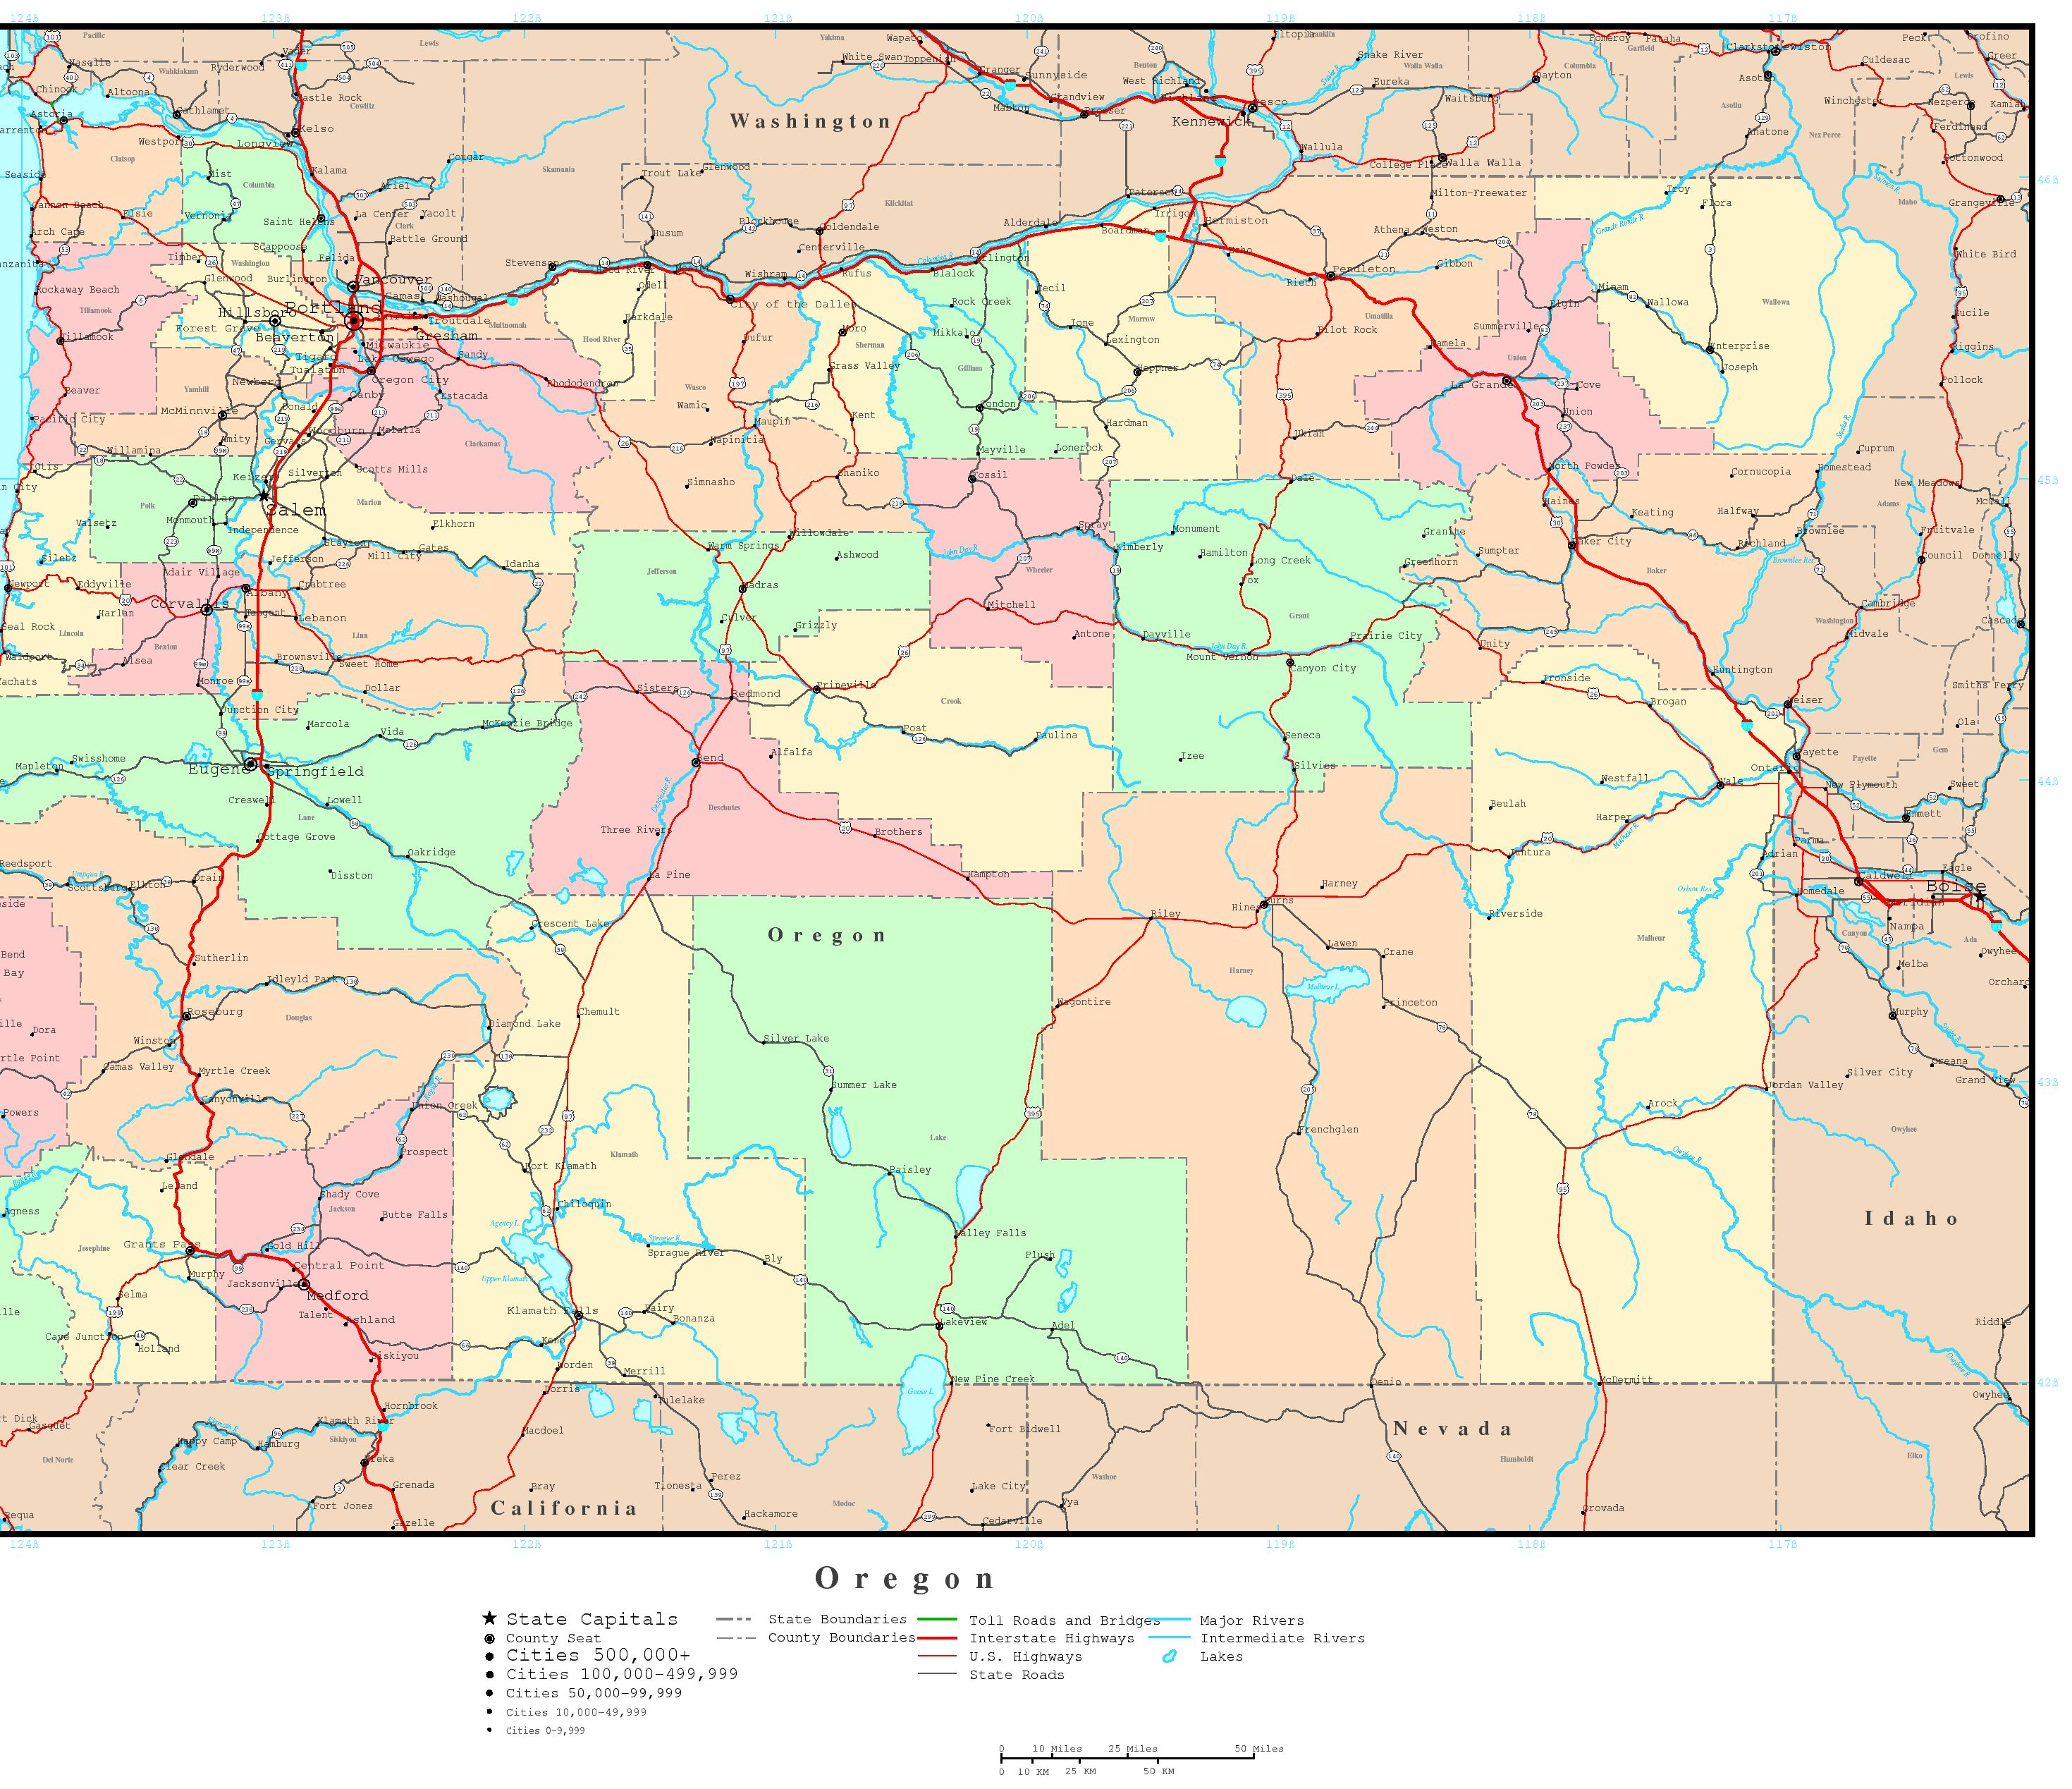 Oregon Political Map - Oregon county maps